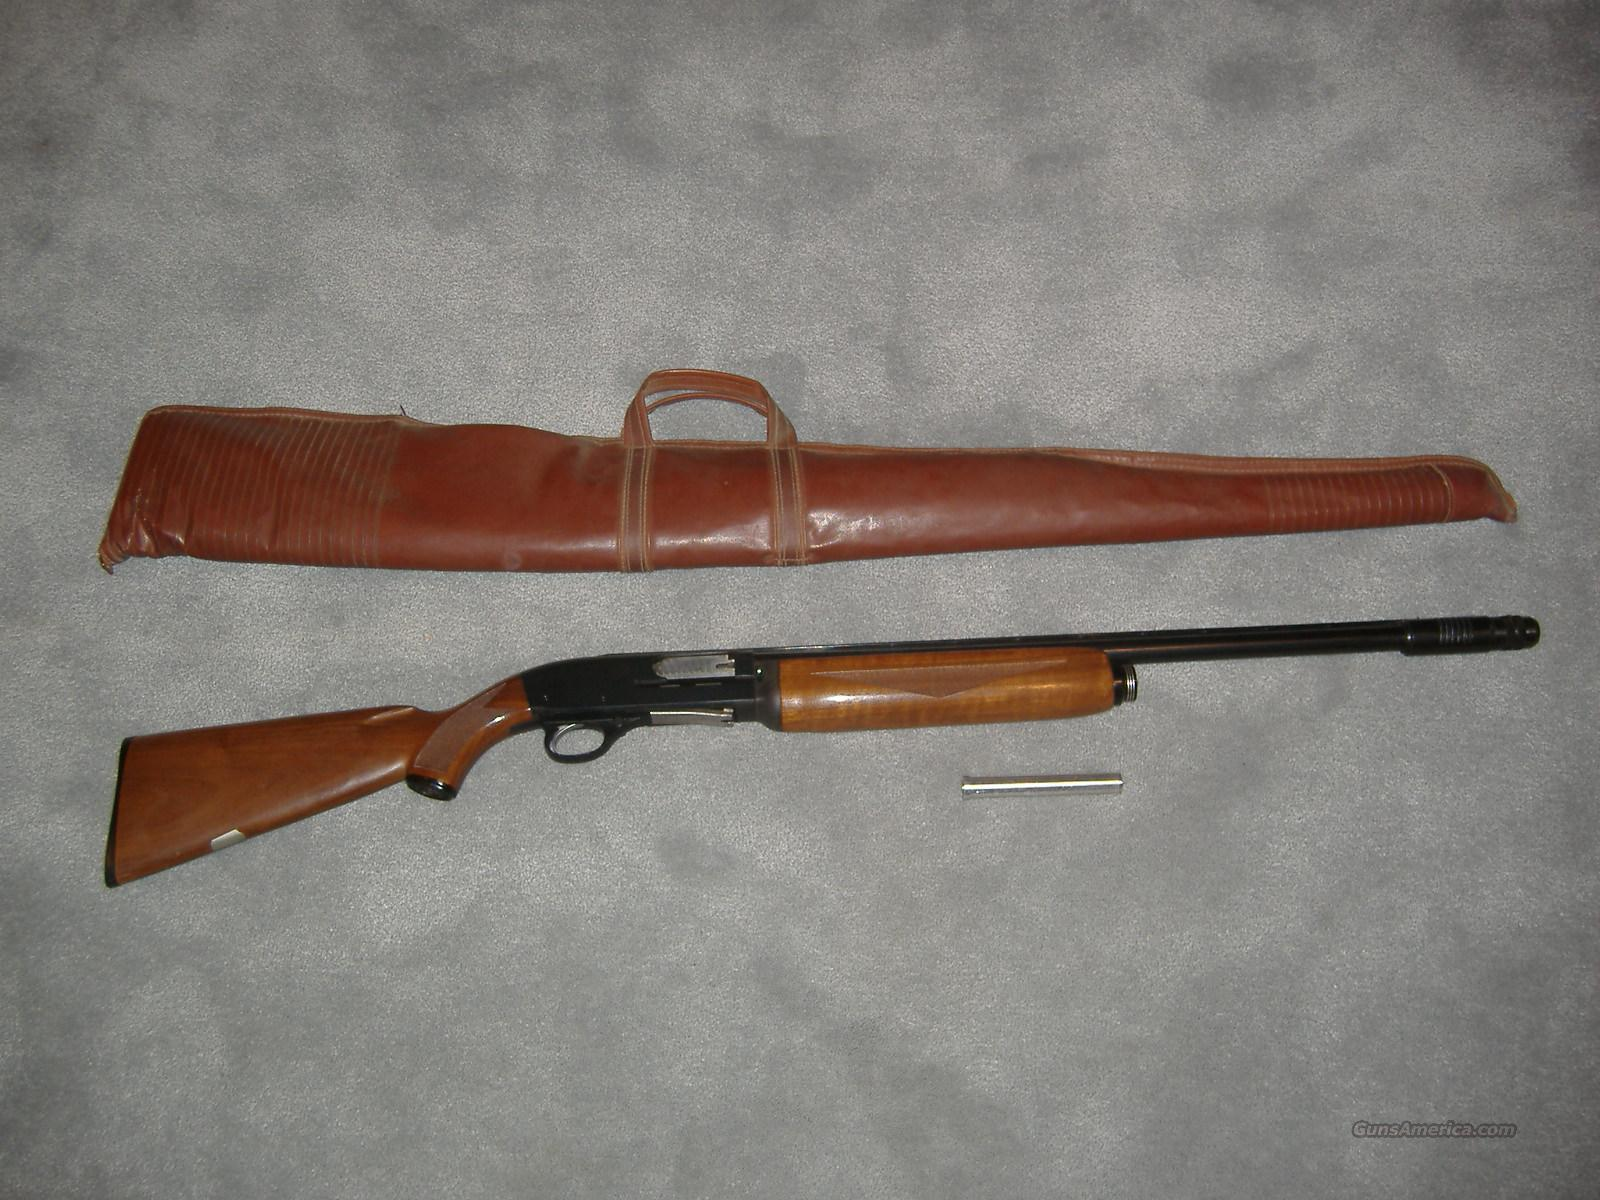 J.C. Higgins Moedl 60 12 ga semi auto  Guns > Shotguns > JC Higgins Shotguns